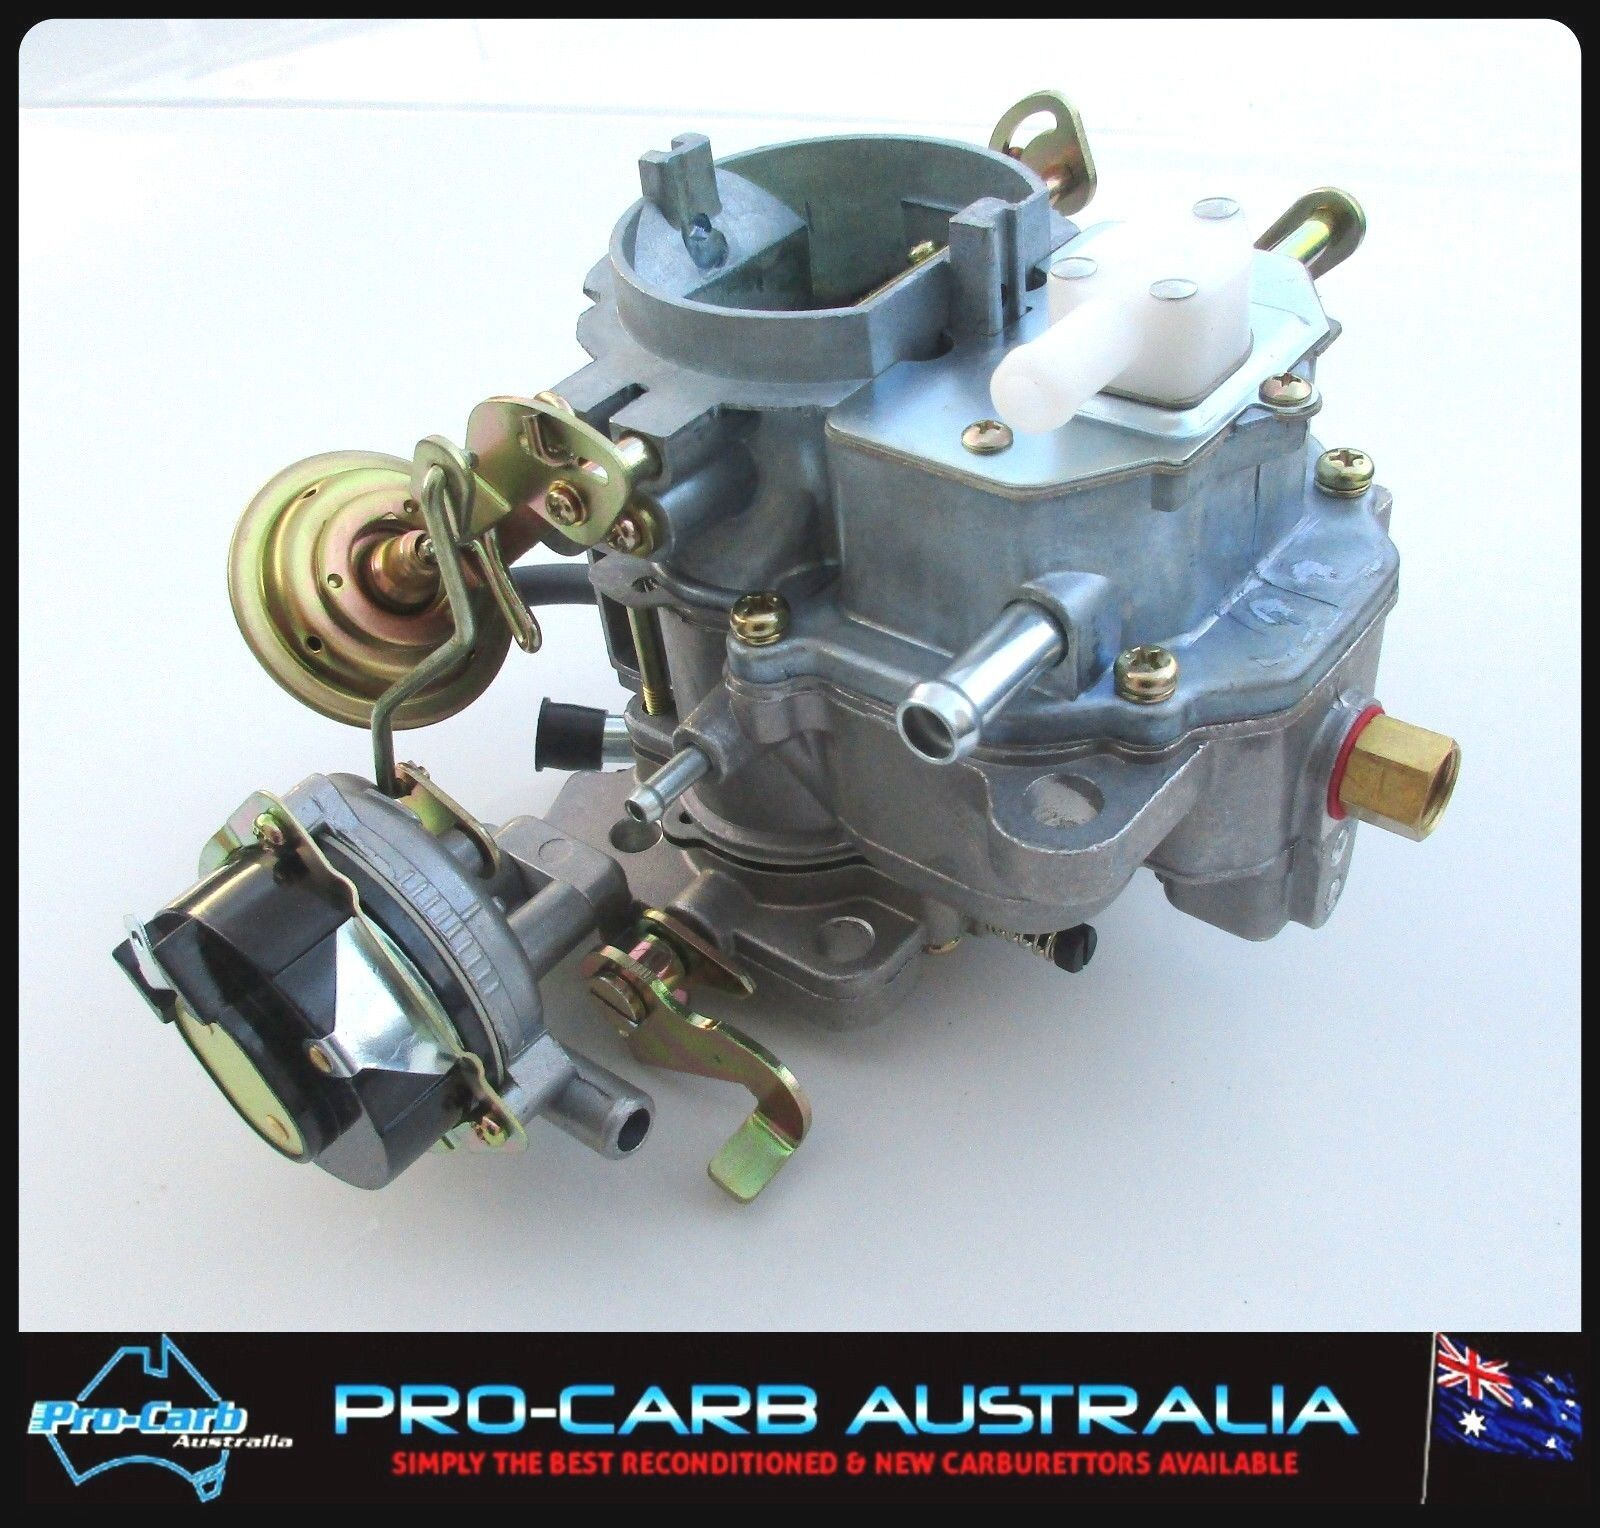 Details about VALIANT AP6,VC,VE,VF,VG,VH CARBY 2BBL BBD CARTER TYPE  CHRYLSER CARBURETTOR NEW